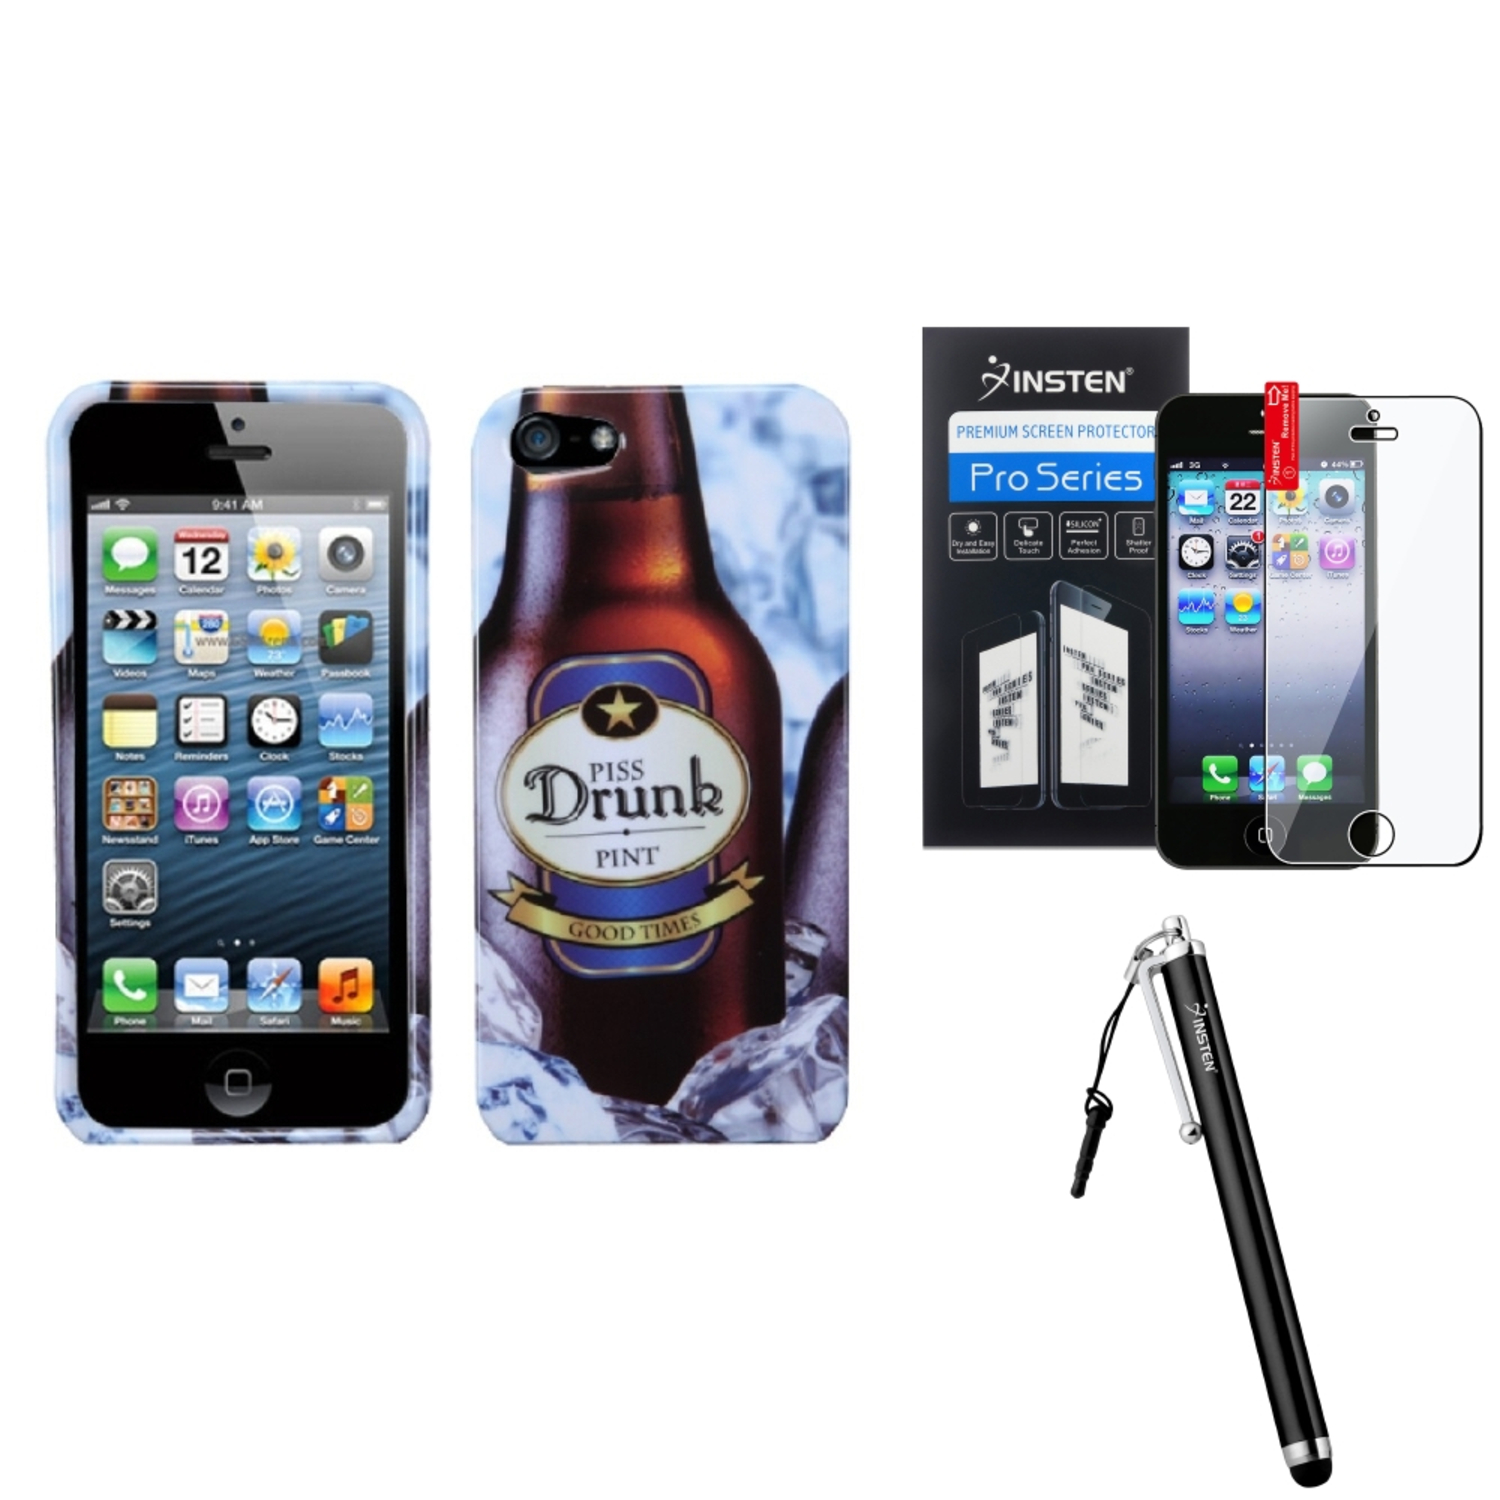 Insten Piss_drunk1 Case For Apple iPhone 5 / 5s   Stylus   LCD Film